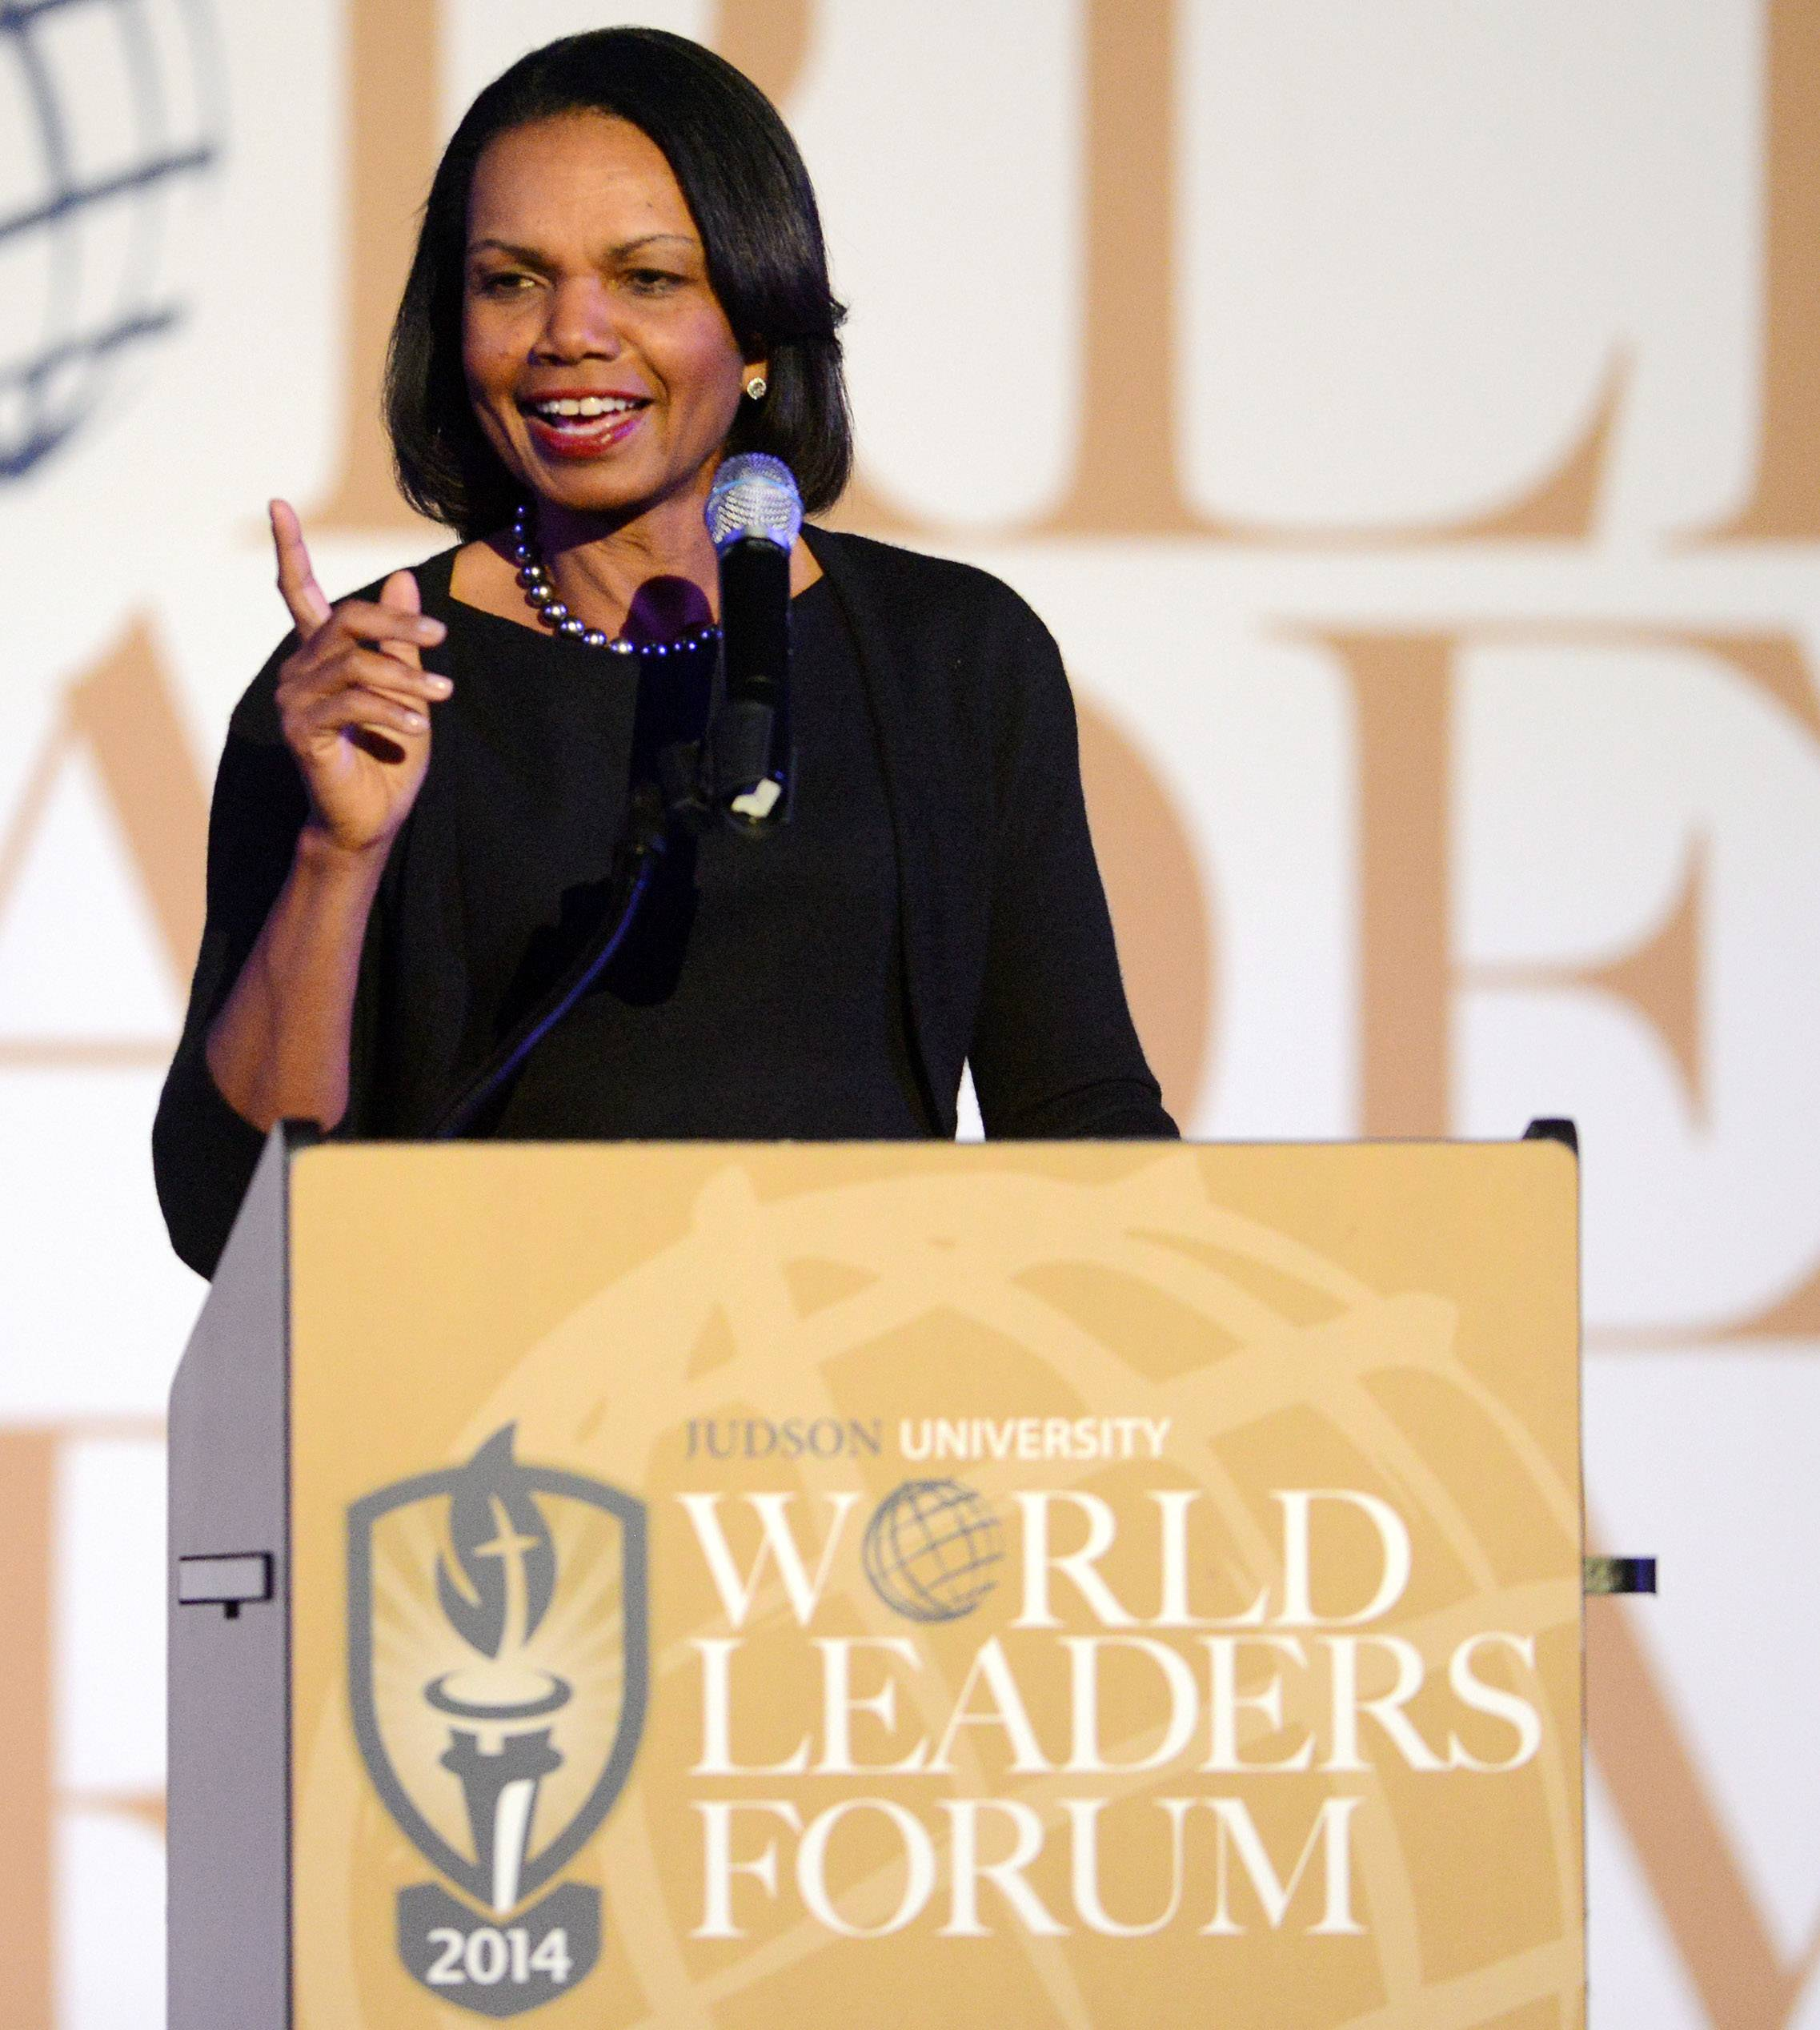 Former Secretary of State Condoleezza Rice gives the keynote speech Wednesday at Judson University's World Leaders Forum in Elgin.